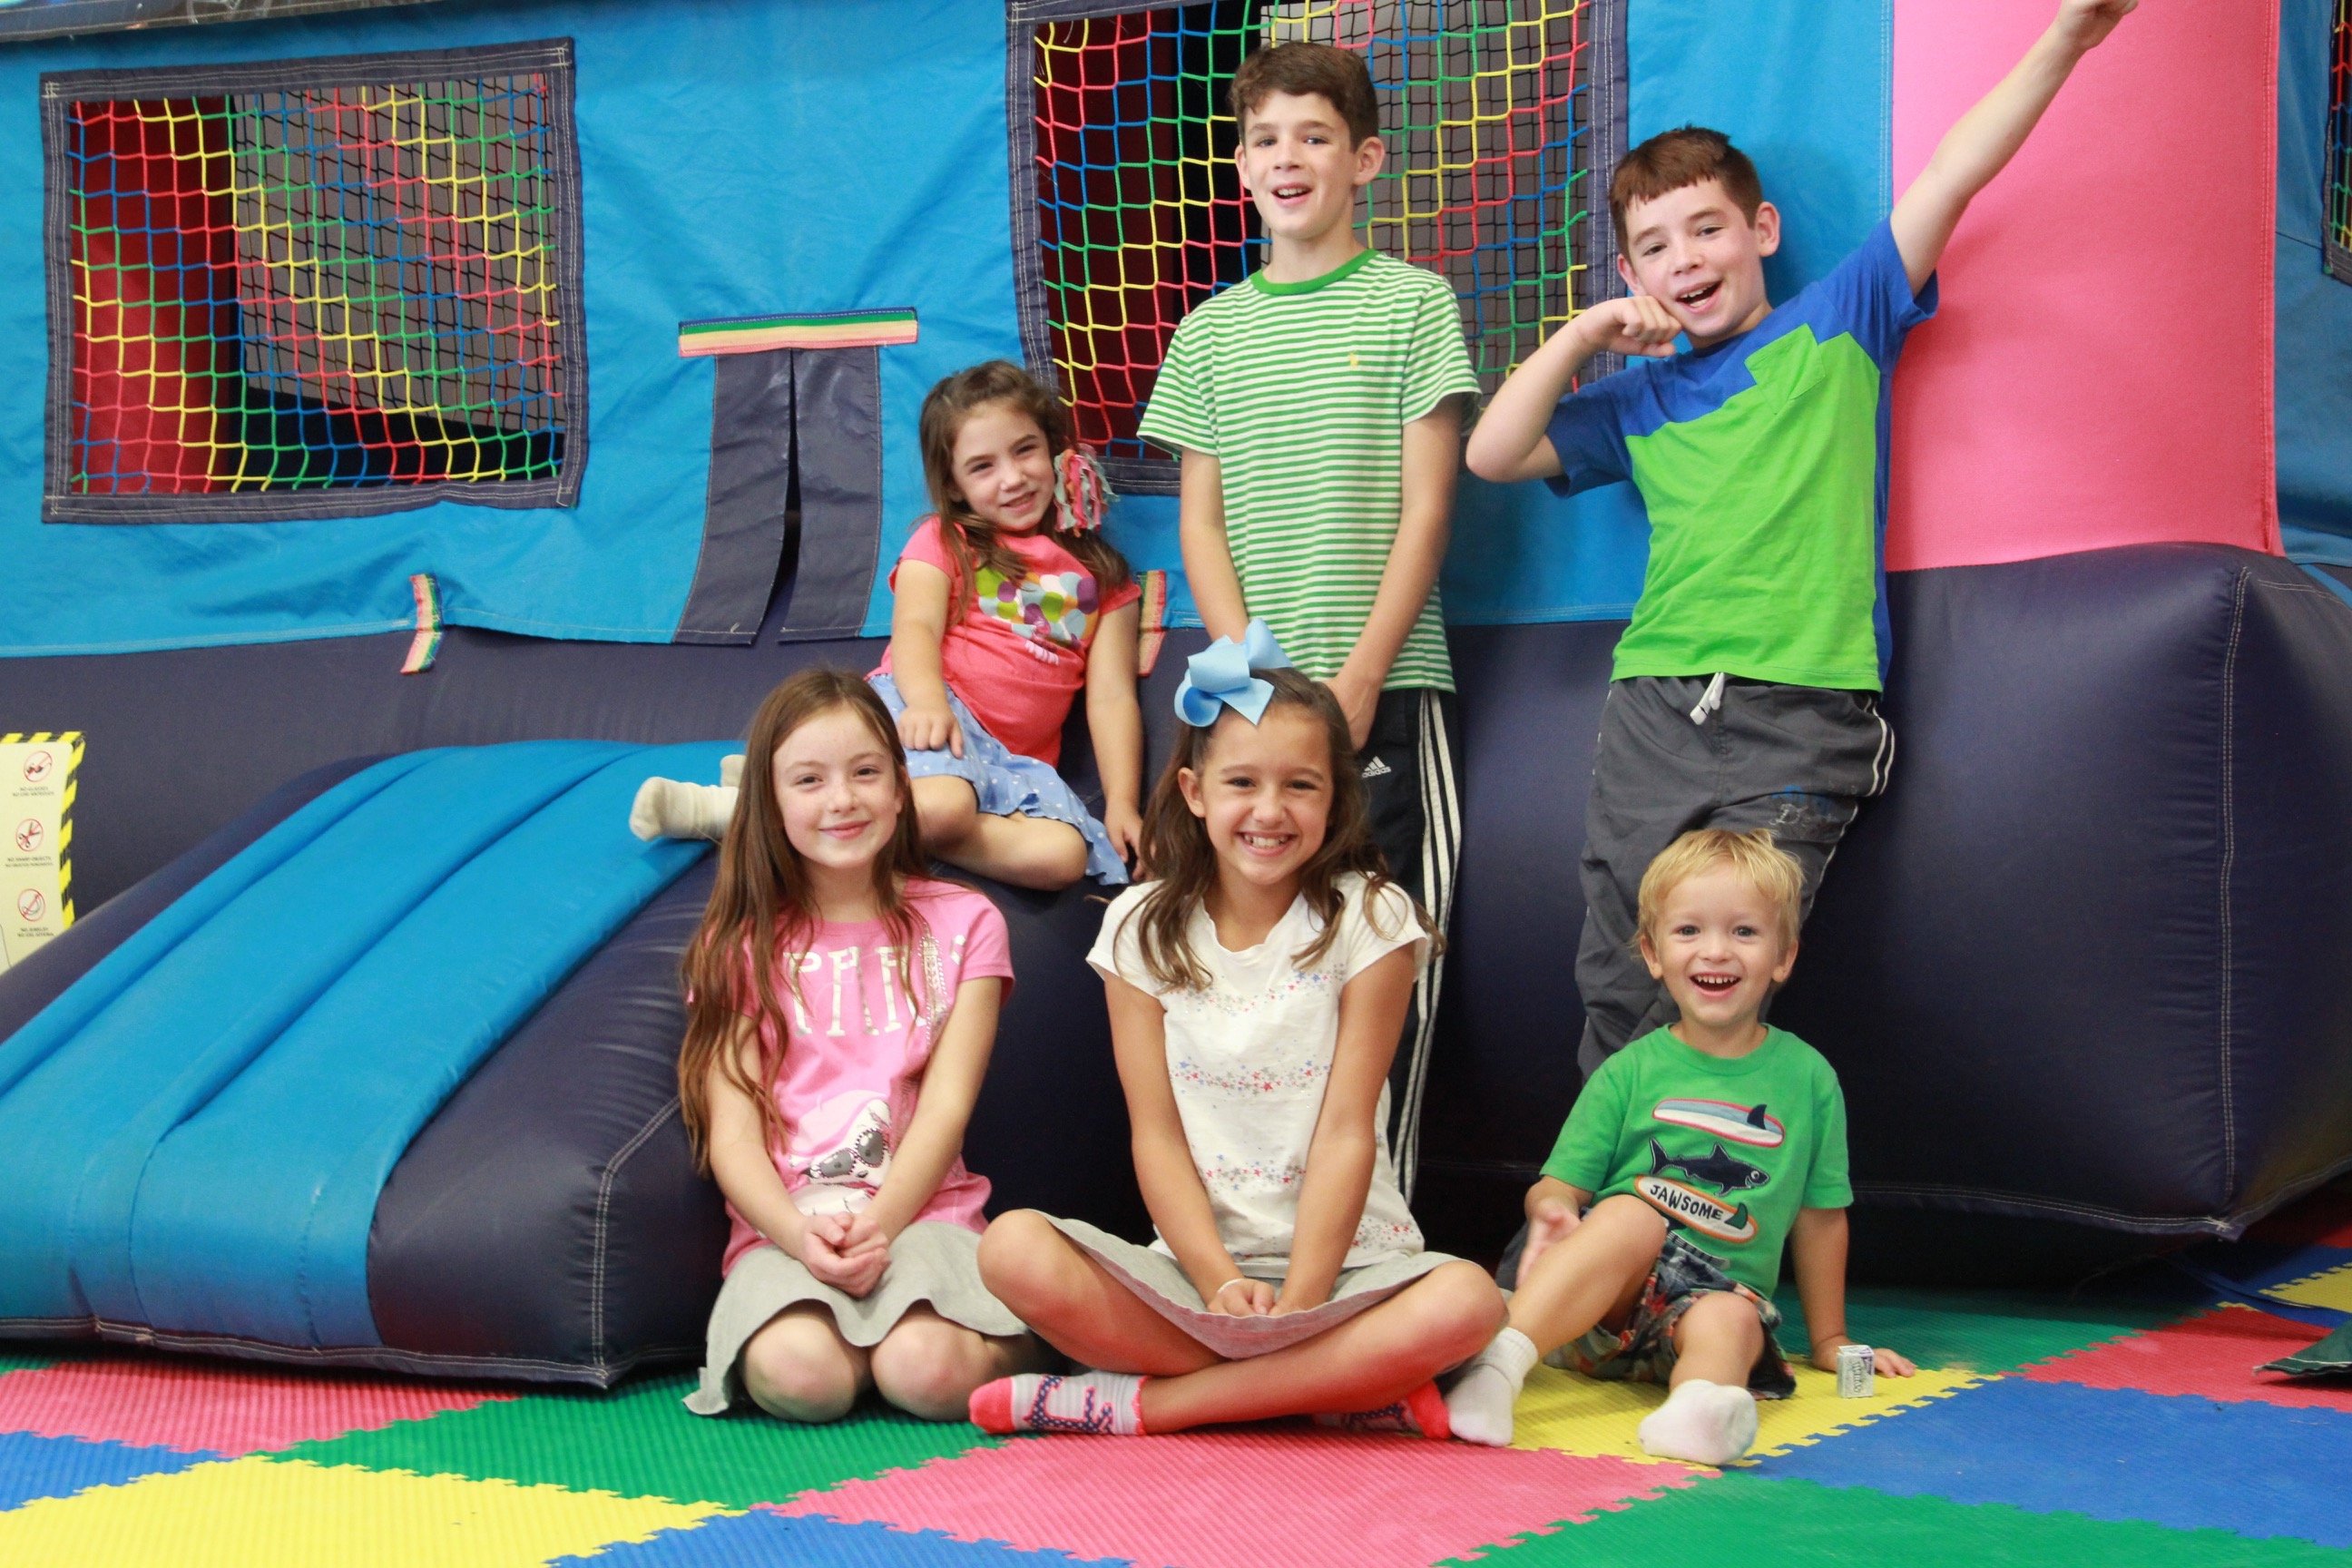 birthday-party-fun-big-bounce-fun-center-new-castle-indiana